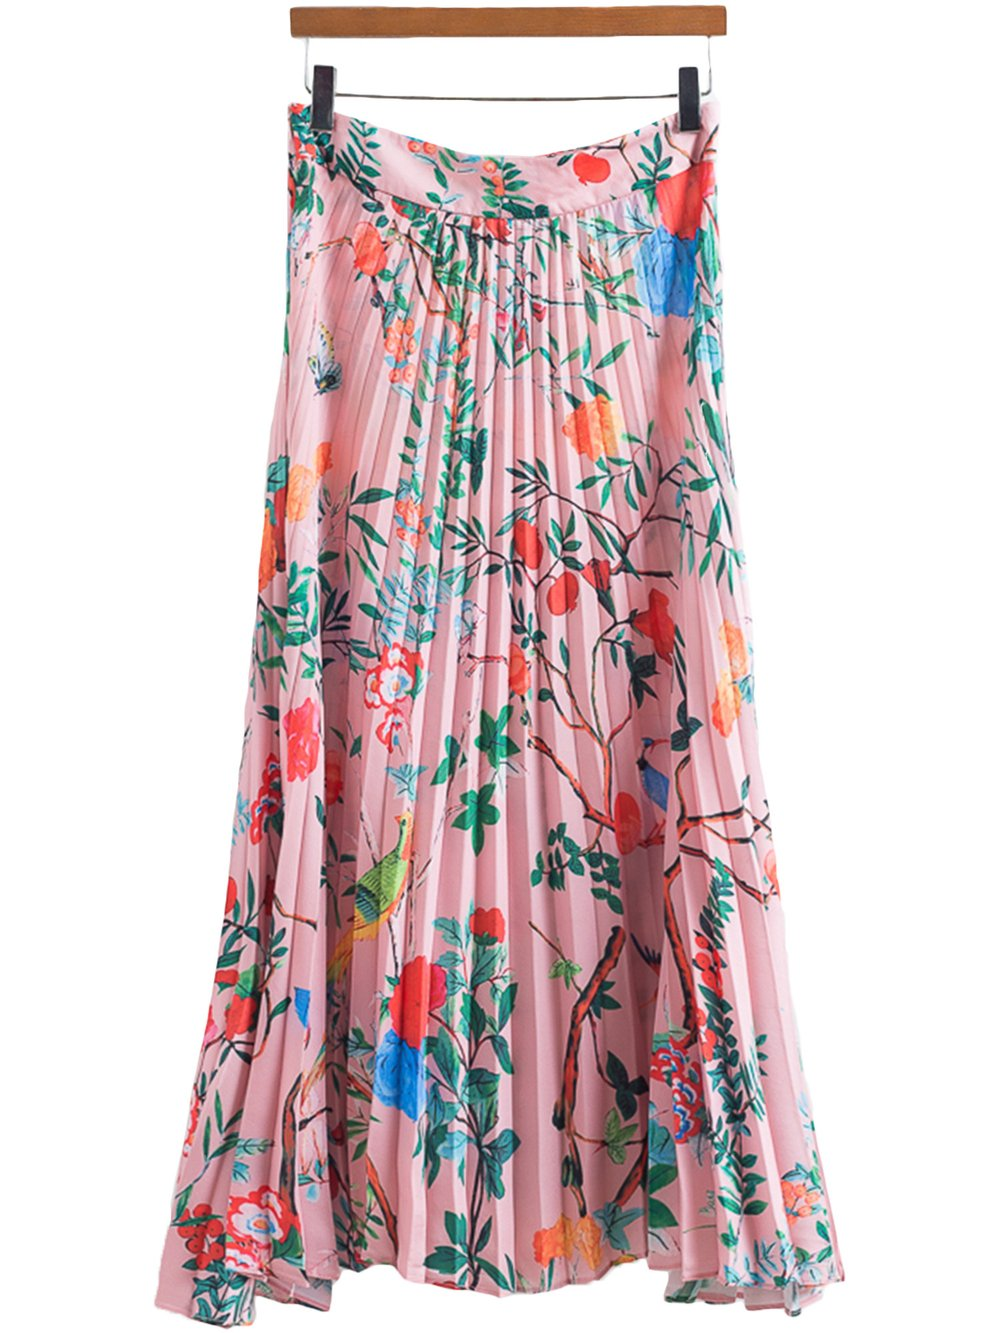 Goodnight Macaroon presents the 'Aline' Pink Floral Long Pleated Skirt